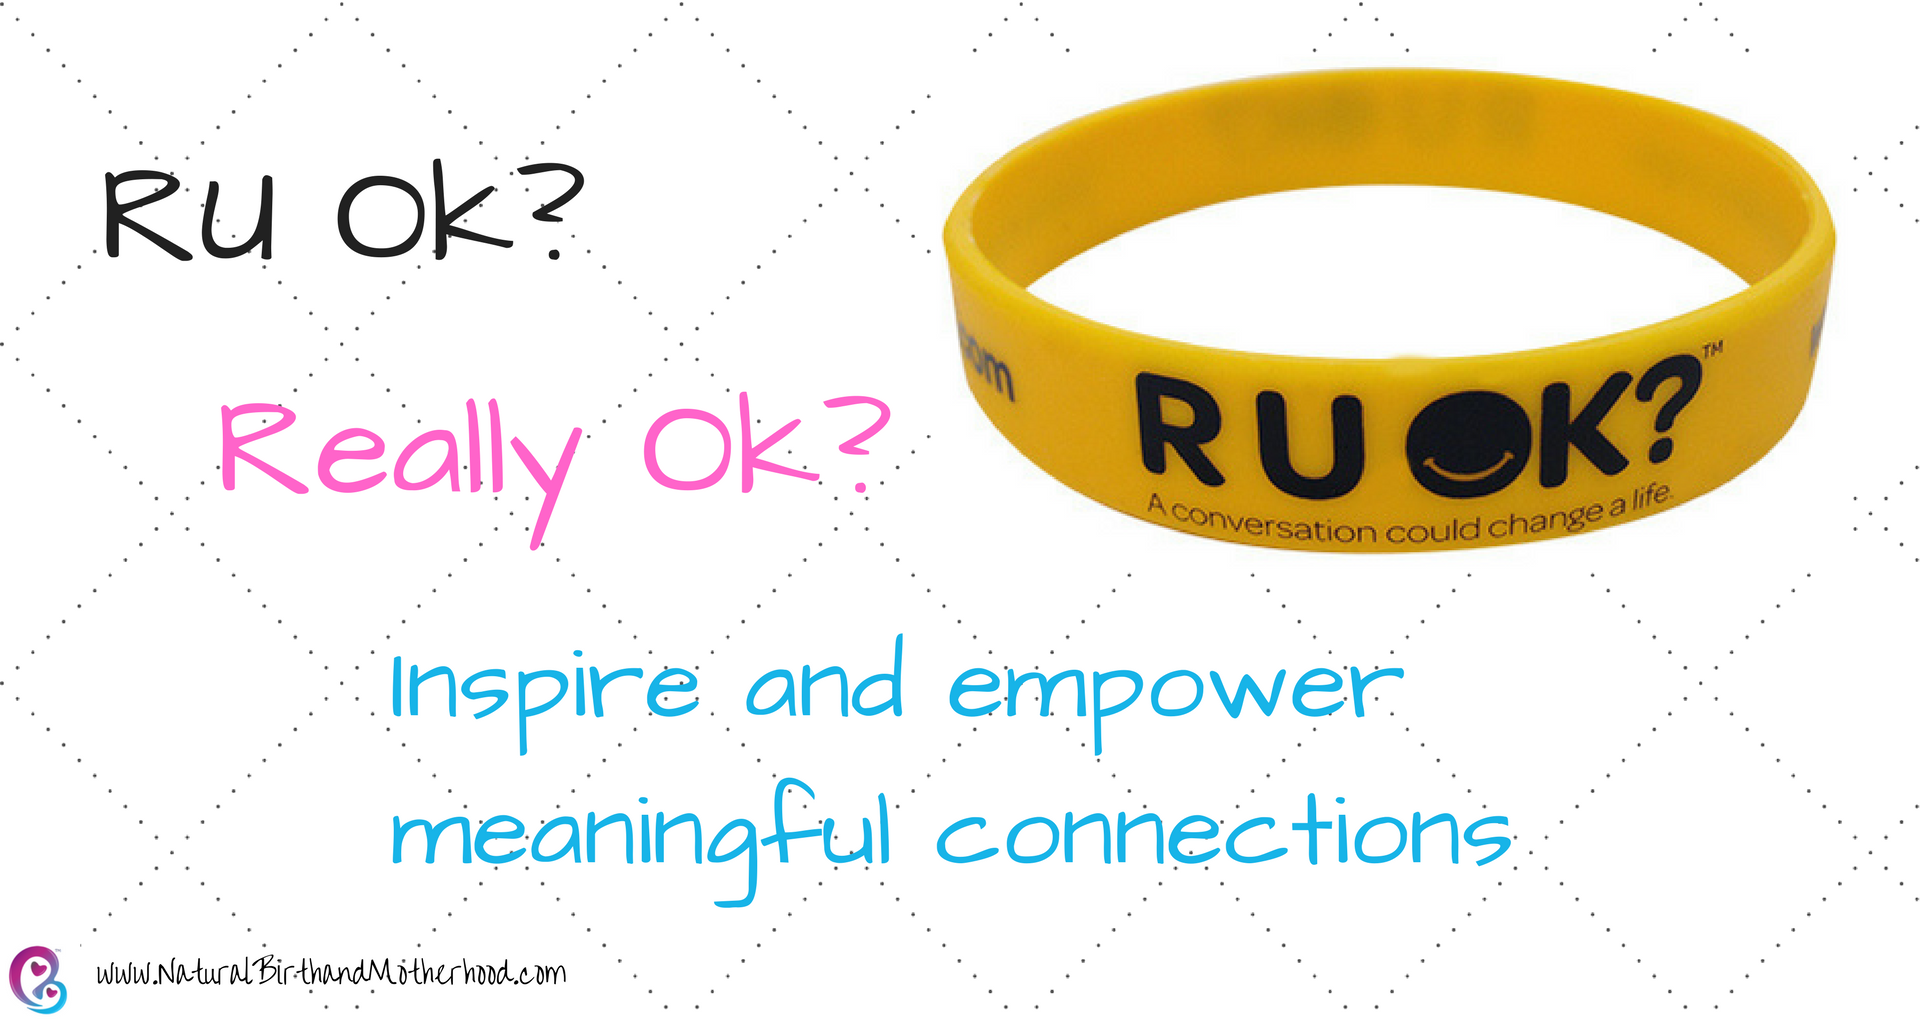 RU Ok? inspire and empower meaningful connections